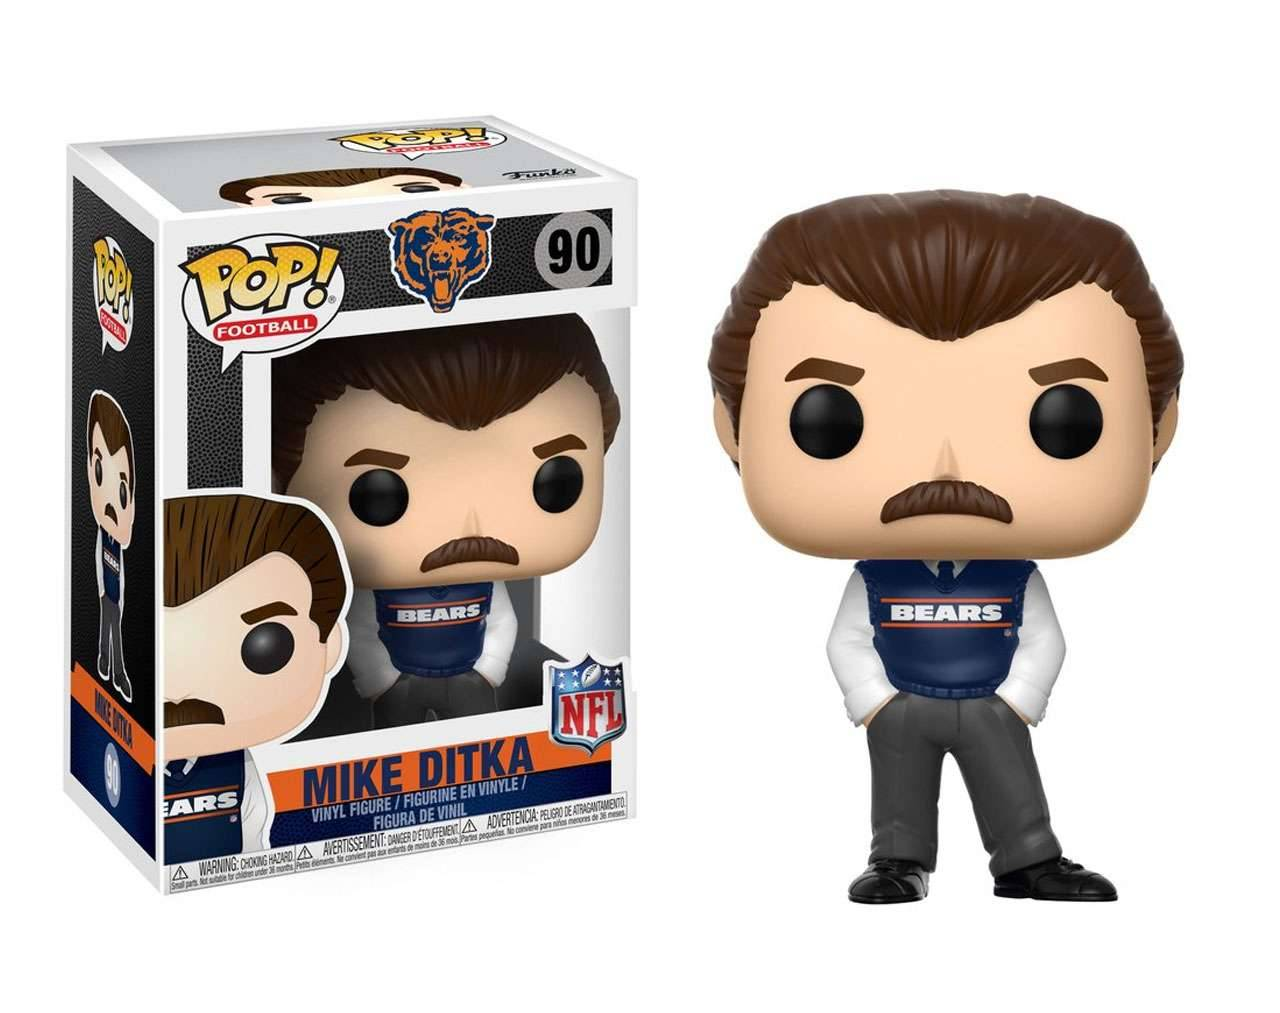 Mike Ditka (Descontinuado) NFL Legends